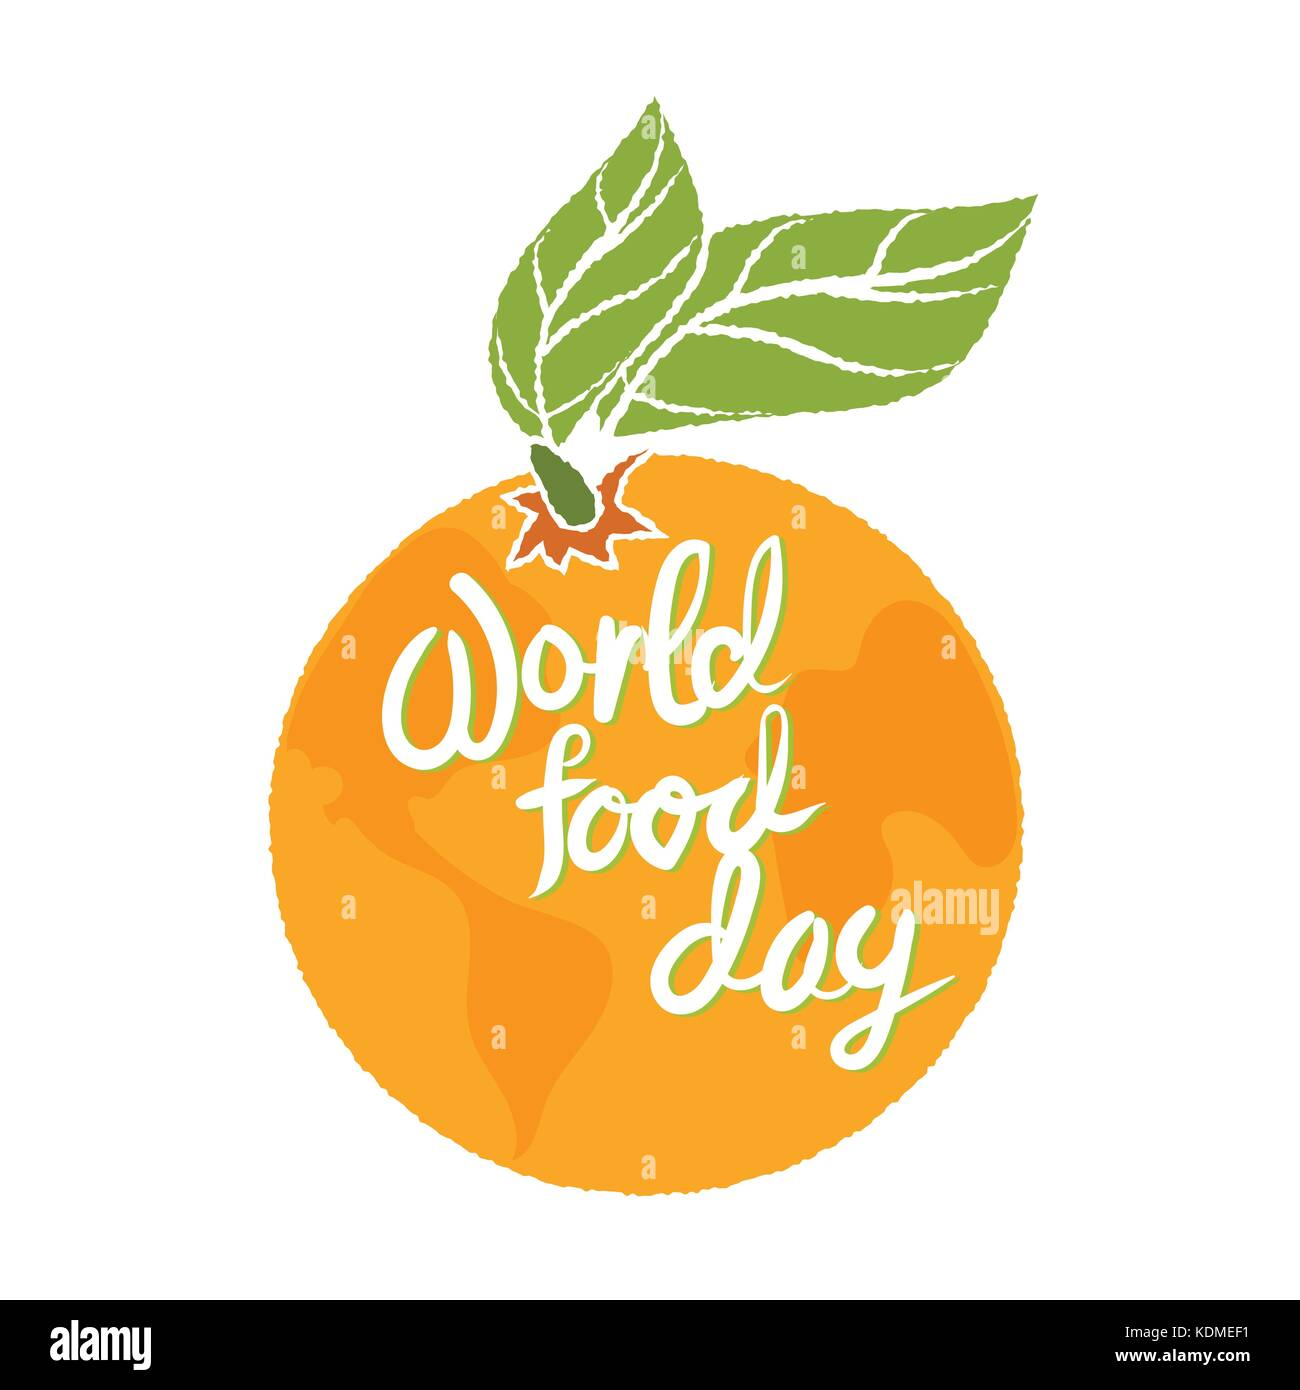 World food Day in orange for banner, holiday concept-Vector Illustration. - Stock Image